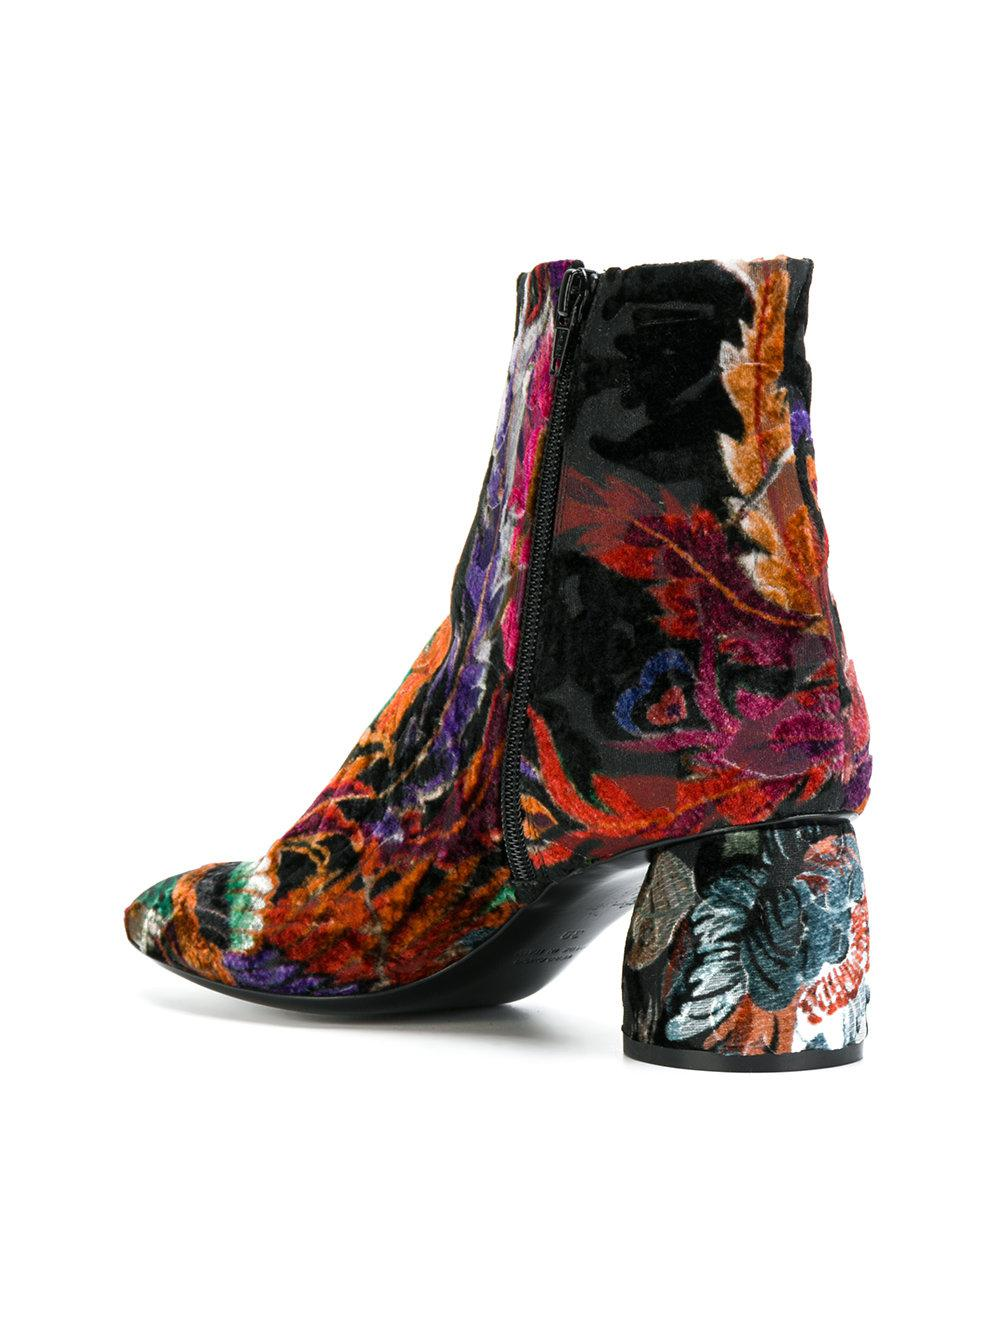 Strategia Velvet Floral Embroidered Boots